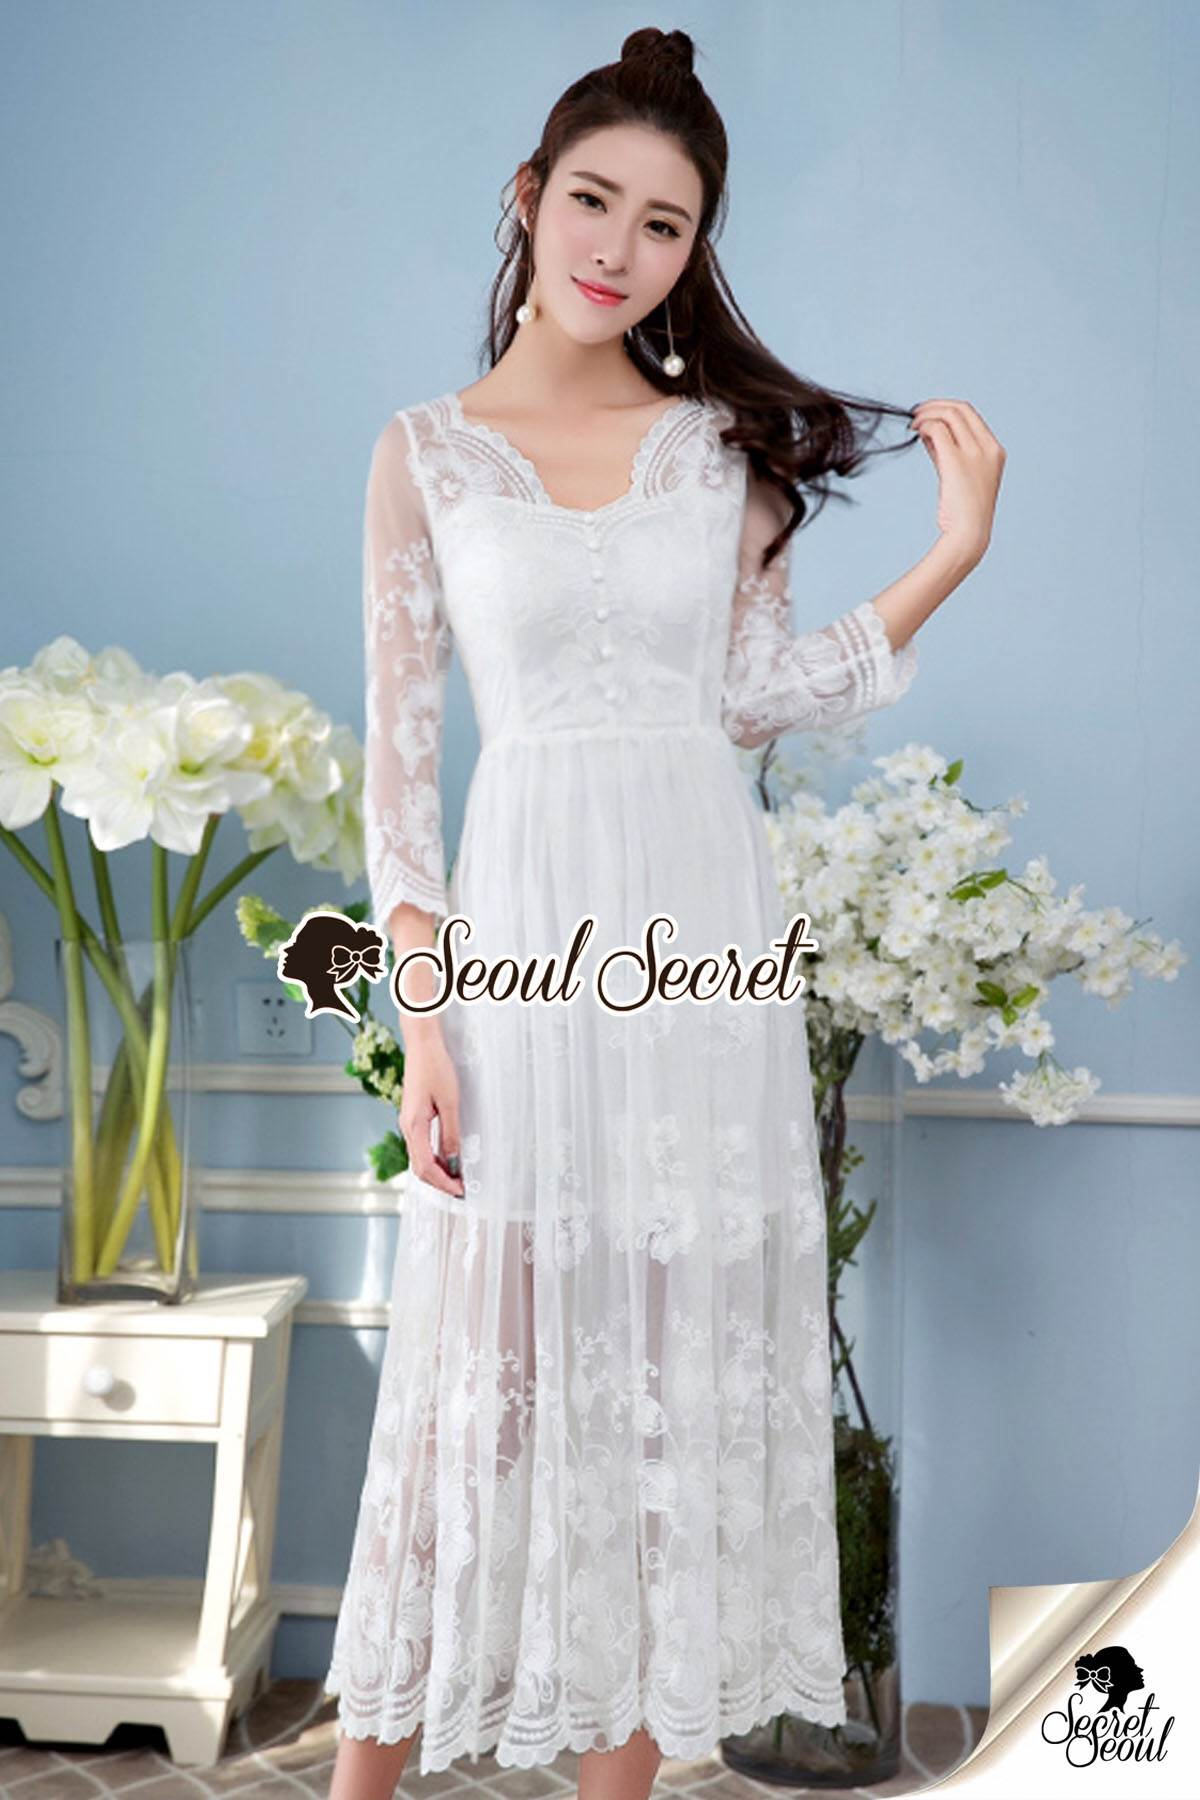 Seoul Secret Say's .... Princess Curly Netty Flora Maxi Dress